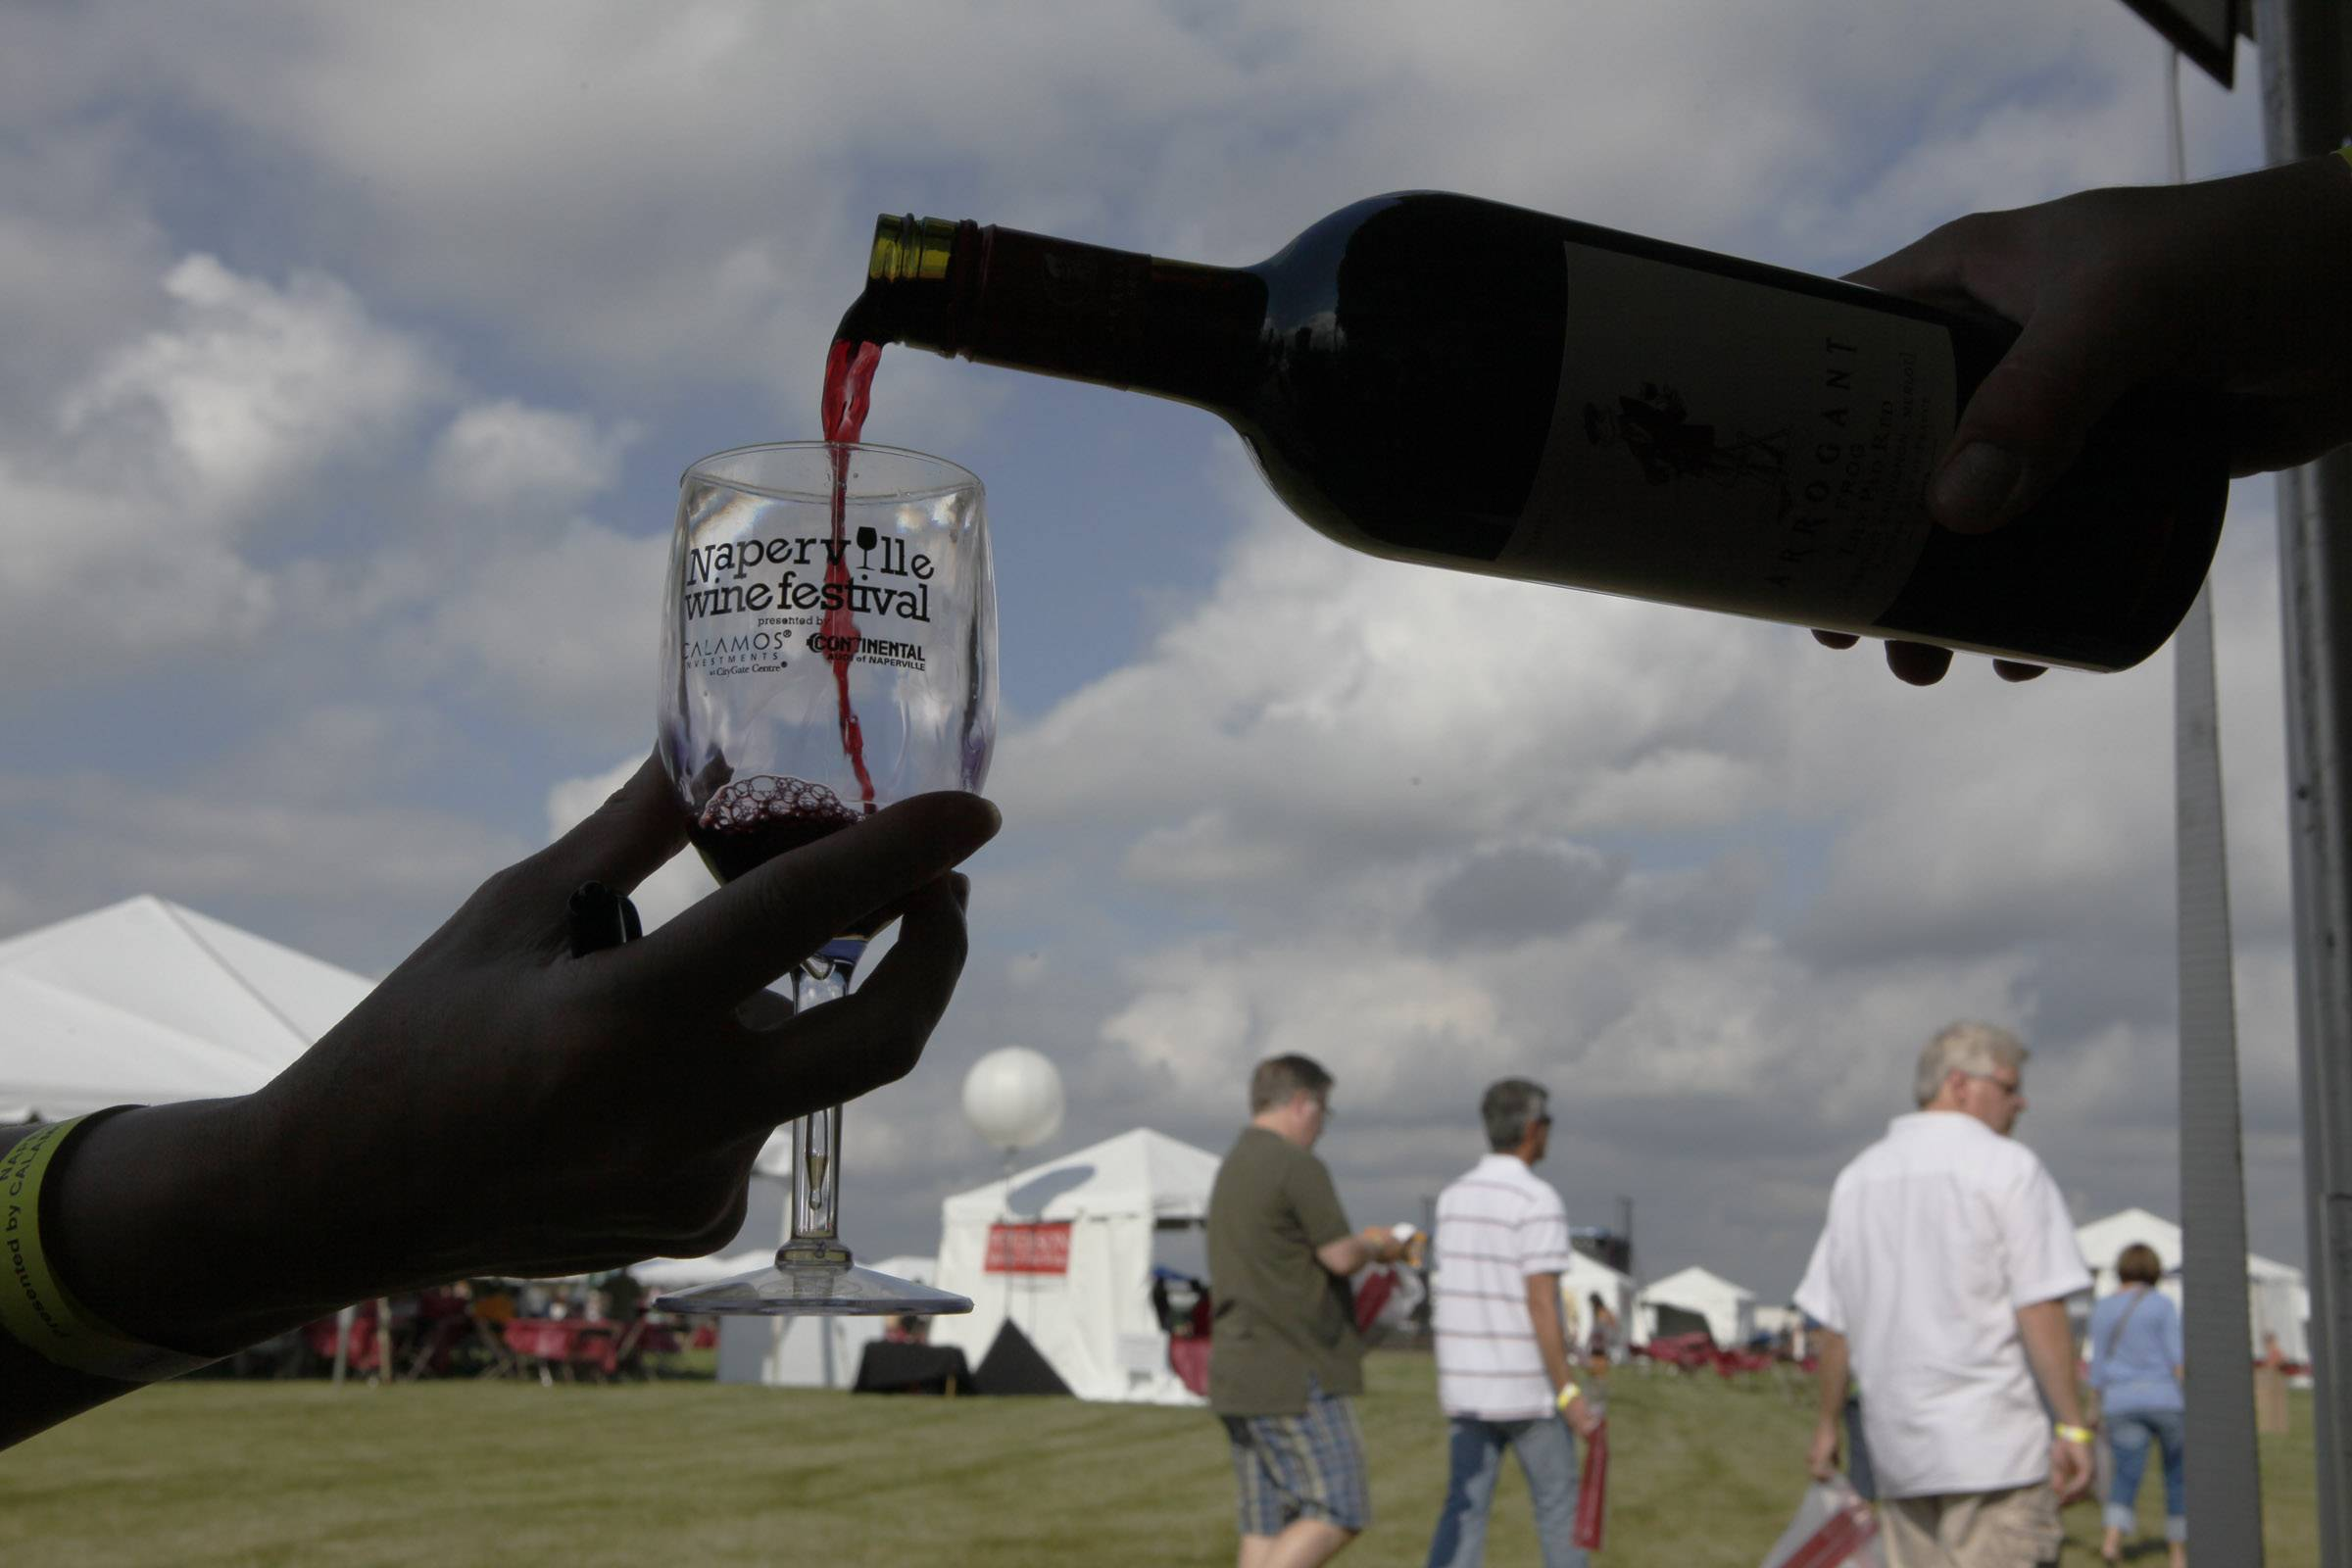 At the 12th annual Naperville Wine Festival Friday and Saturday, Aug. 22 and 23, 59 wineries will offer samples of roughly 350 wines.